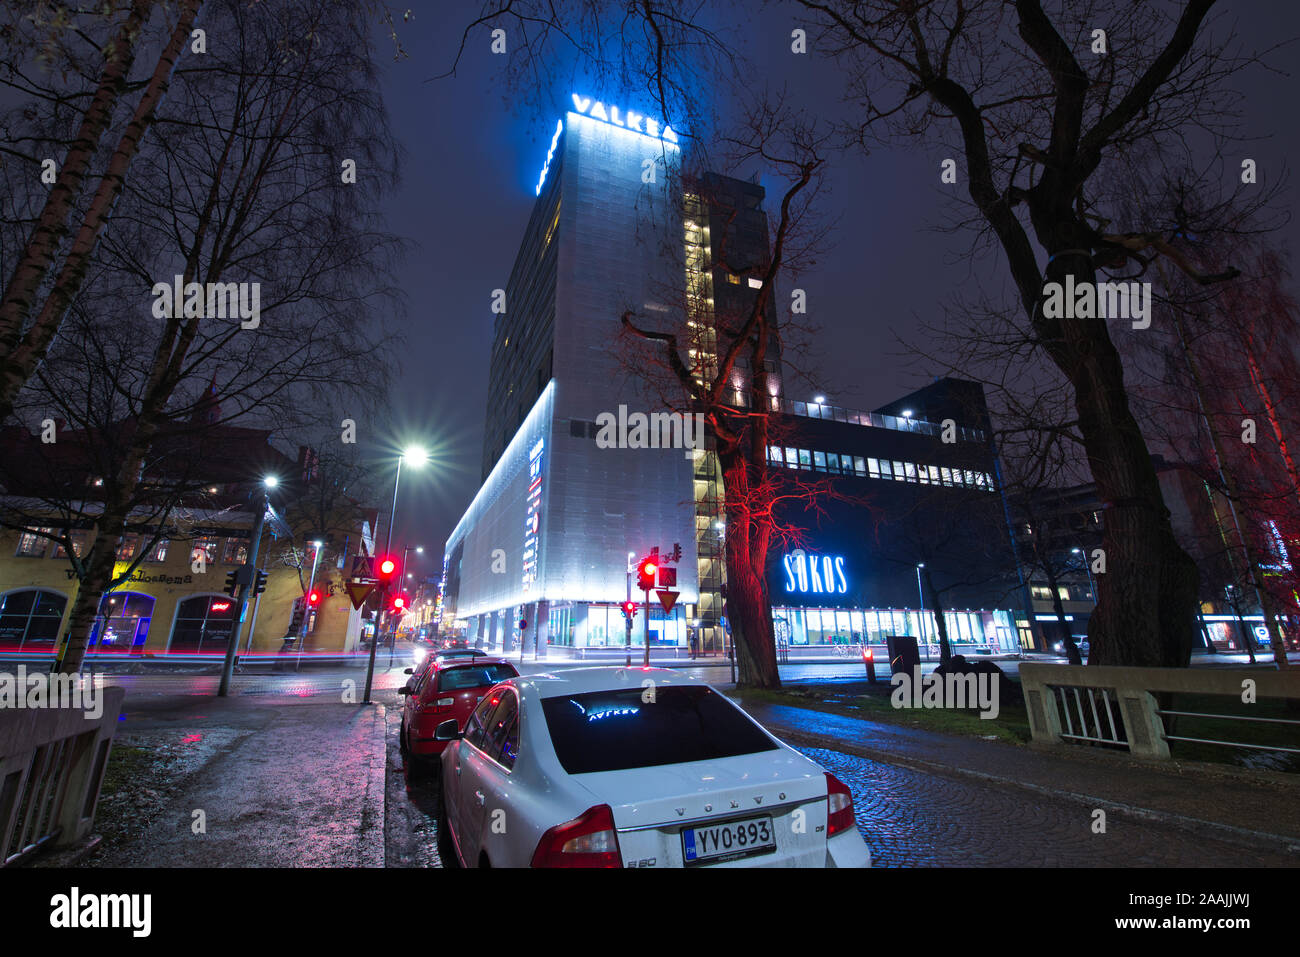 Valkea shopping centre with christmas lights, Oulu, Finland Stock Photo